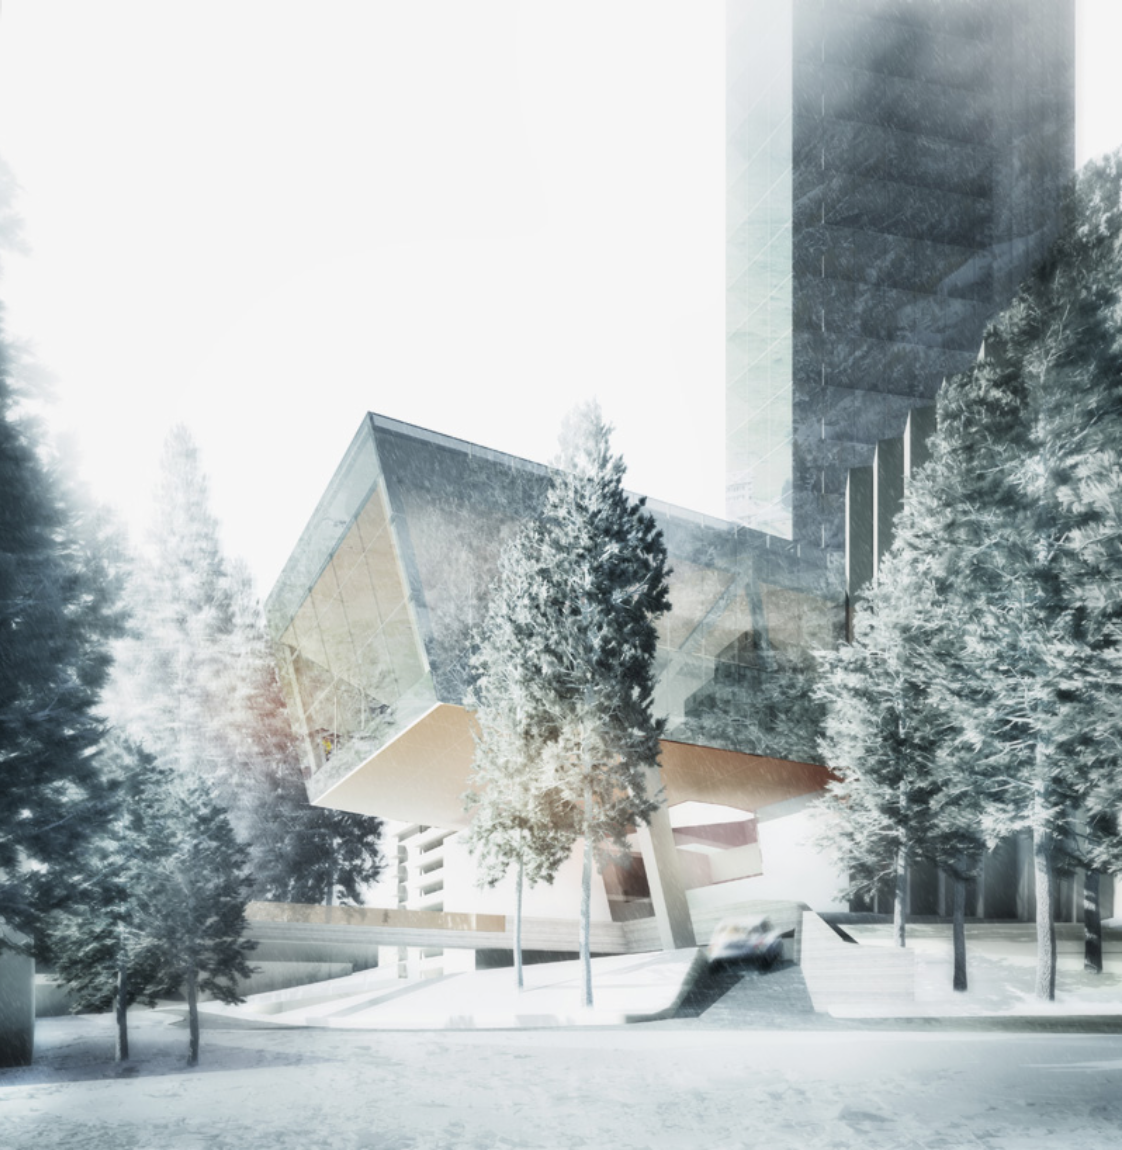 The hotel is the third wing of the 7132 project which also includes The Therme Vals spa and the Valser Path.